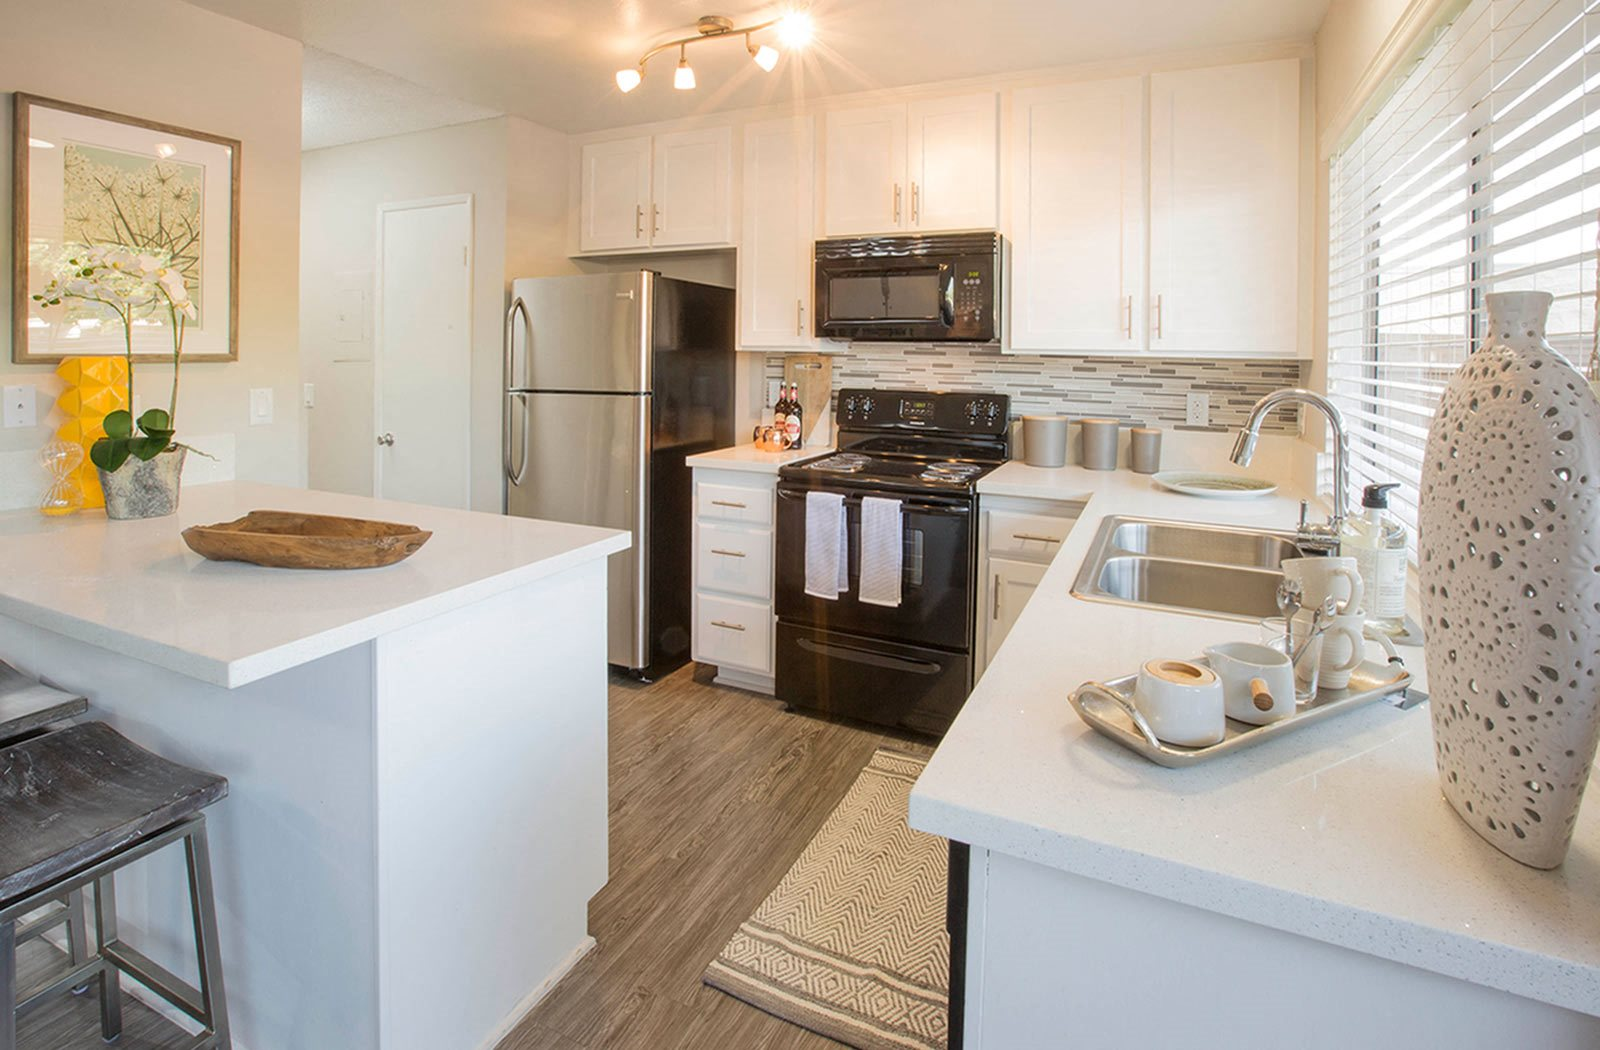 West Covina CA Apartments for Rent - Twelve31 Apartments Kitchen